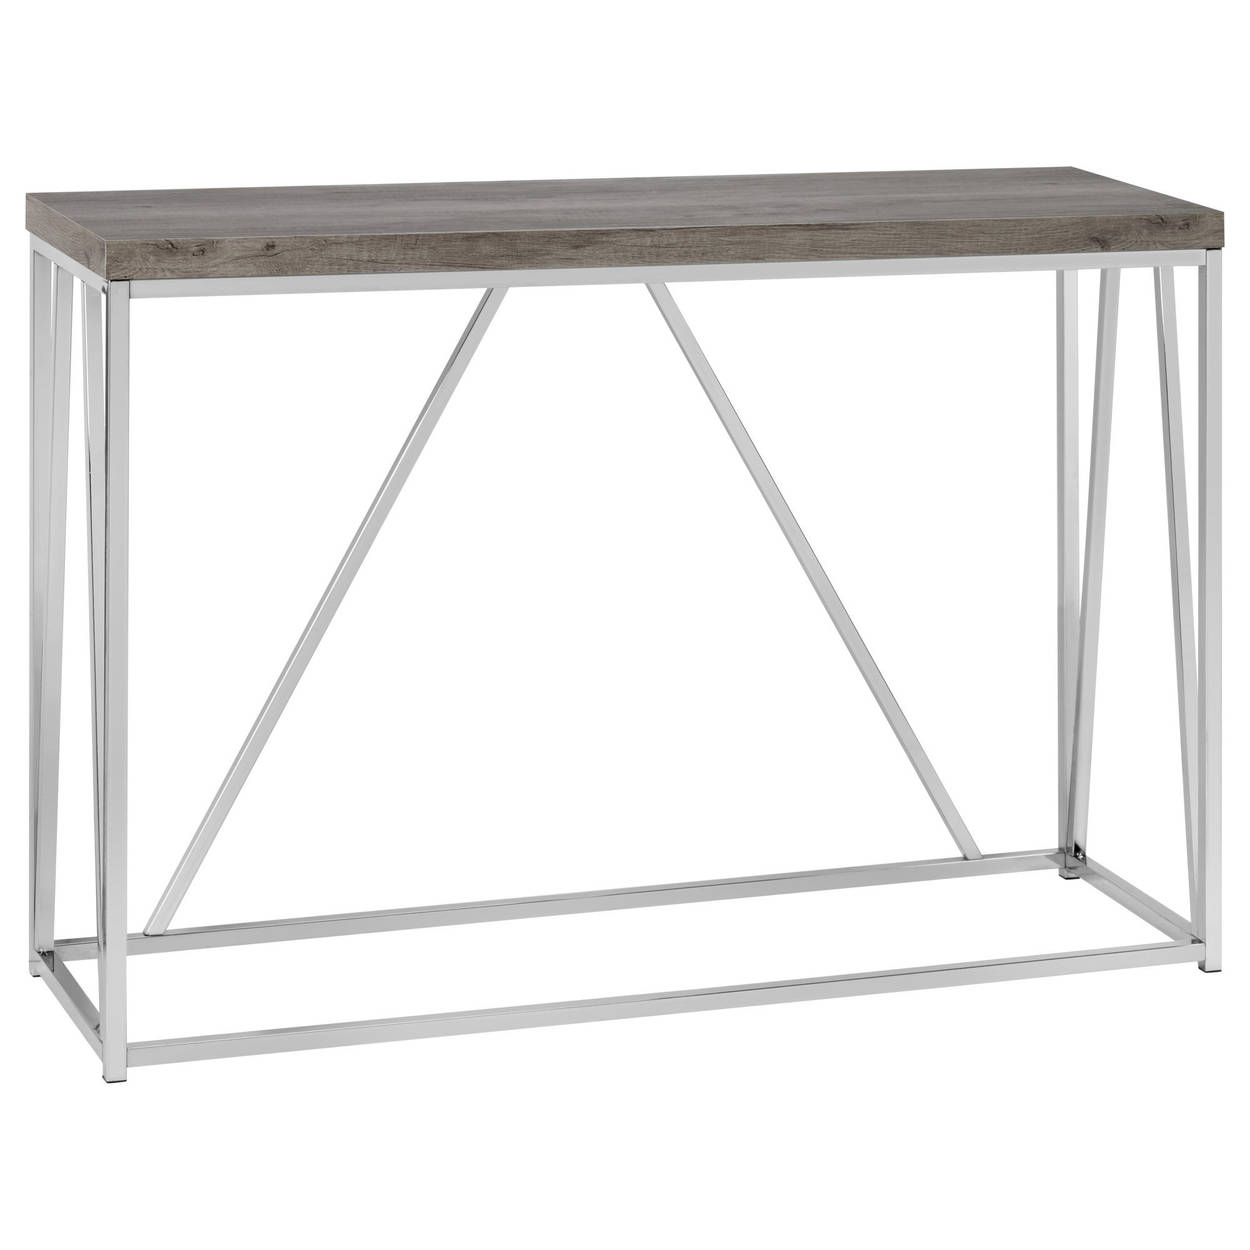 laminated wood and chrome console table bouclair metal glass accent sofa with shelf cupboard decoration mini lamps furniture fargo shower curtain rod purple chair ikea white